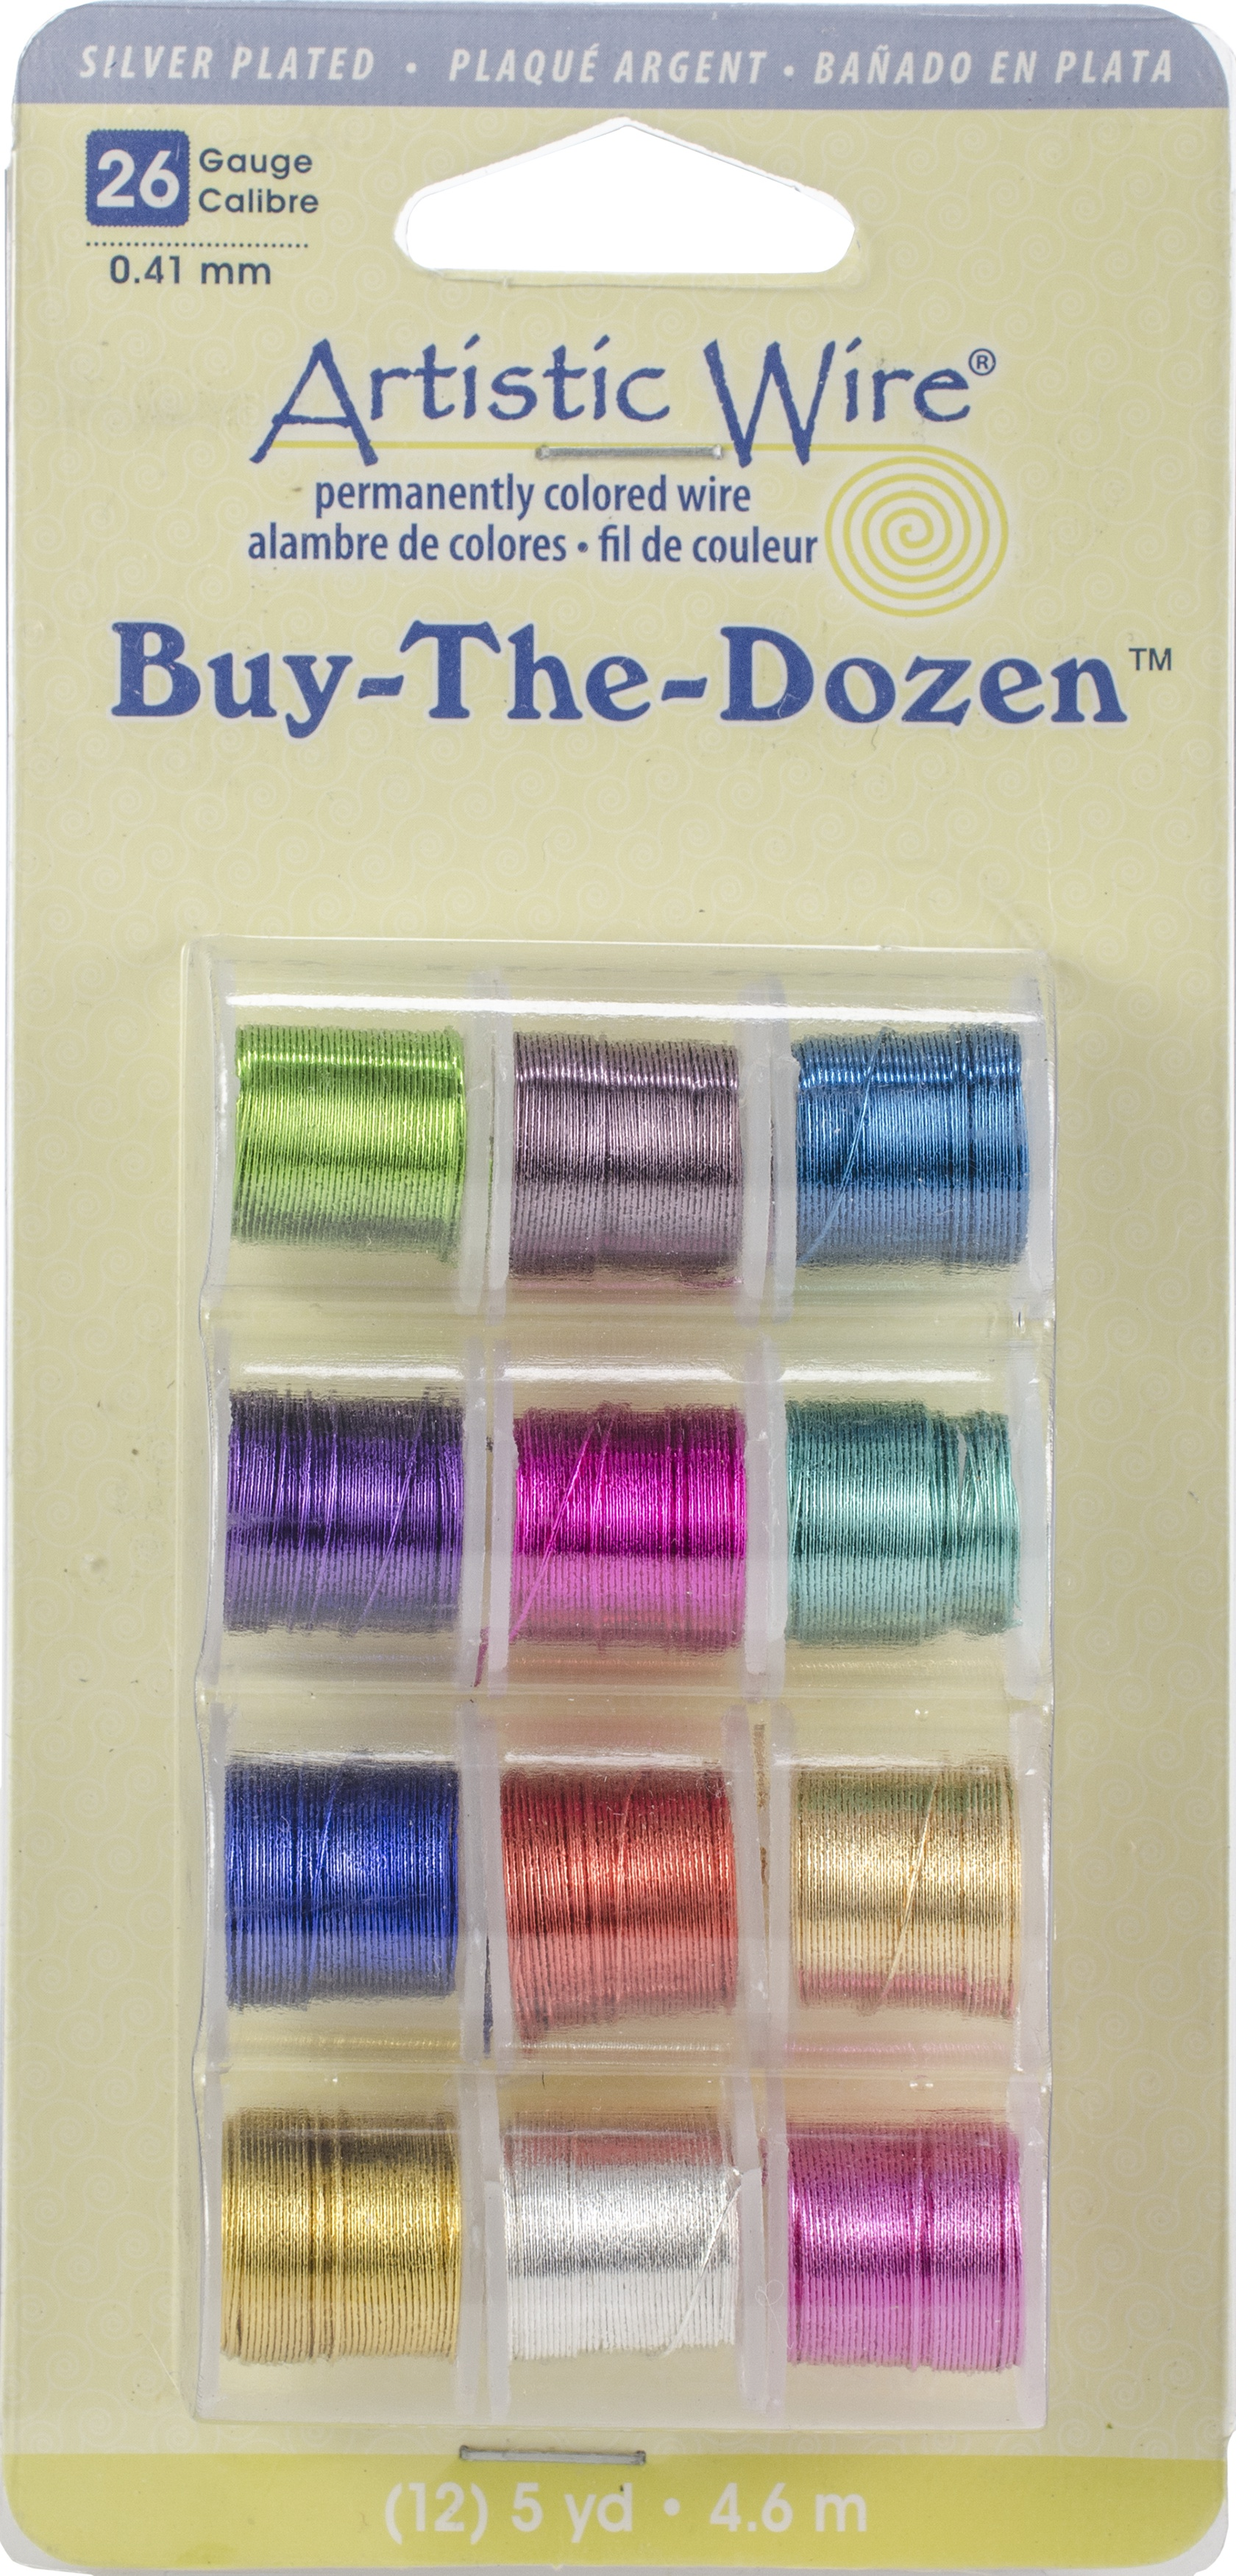 Artistic Wire Buy-The-Dozen Silver-Plated 5yd 12/Pkg-26 Gauge